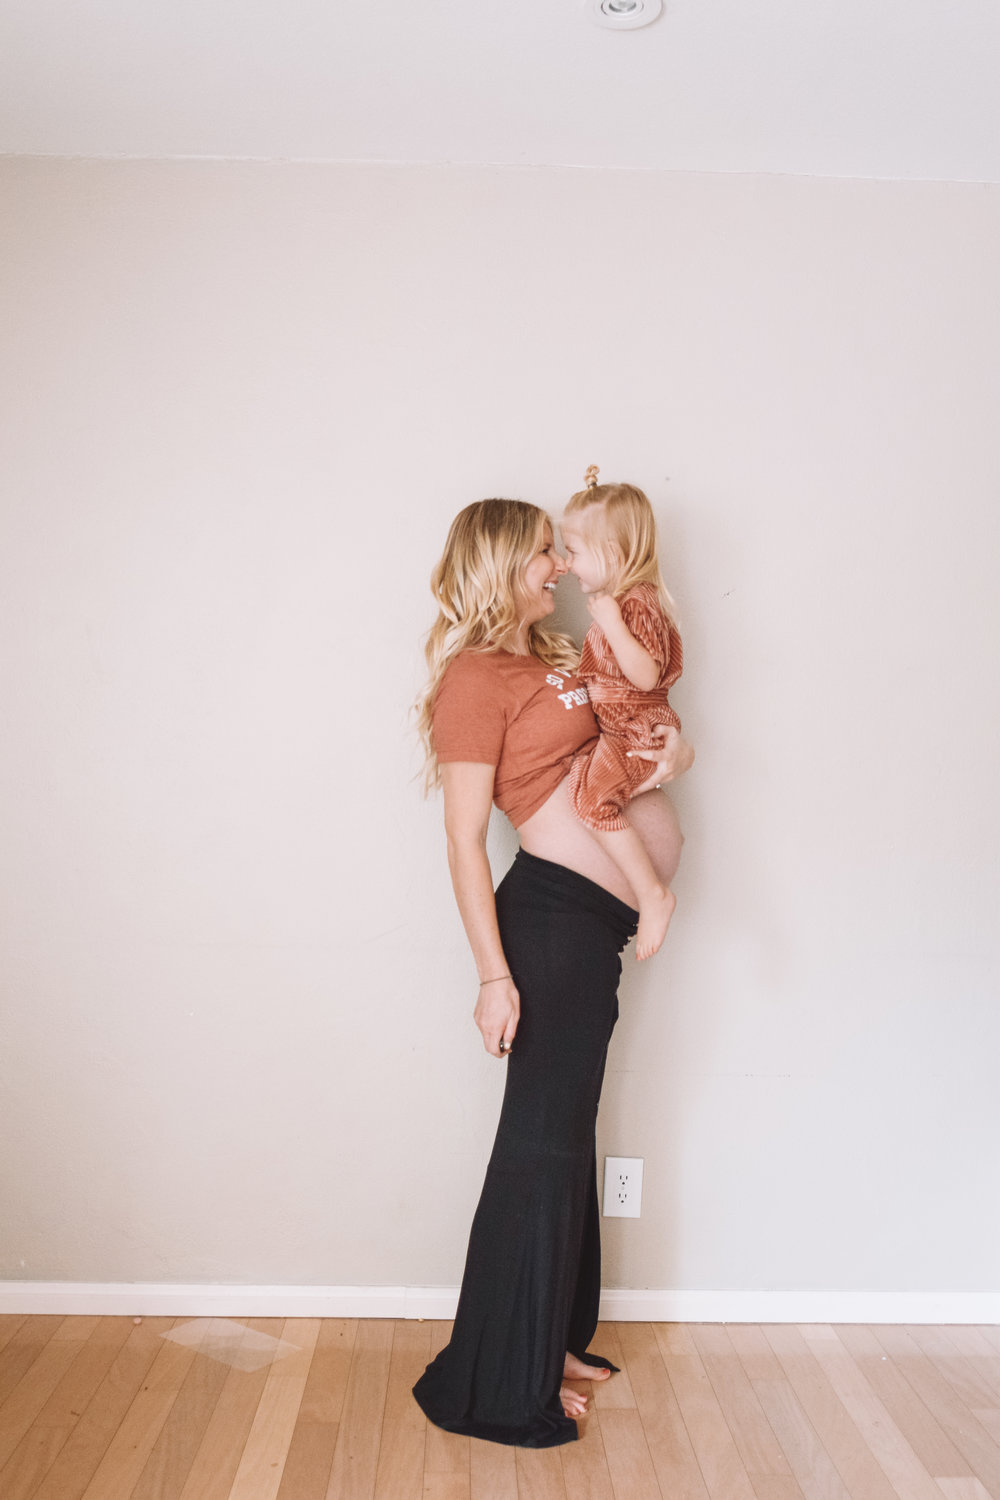 37 Week Pregnant Belly | Funny Pregnancy Shirt of the Week - The Overwhelmed Mommy Blog